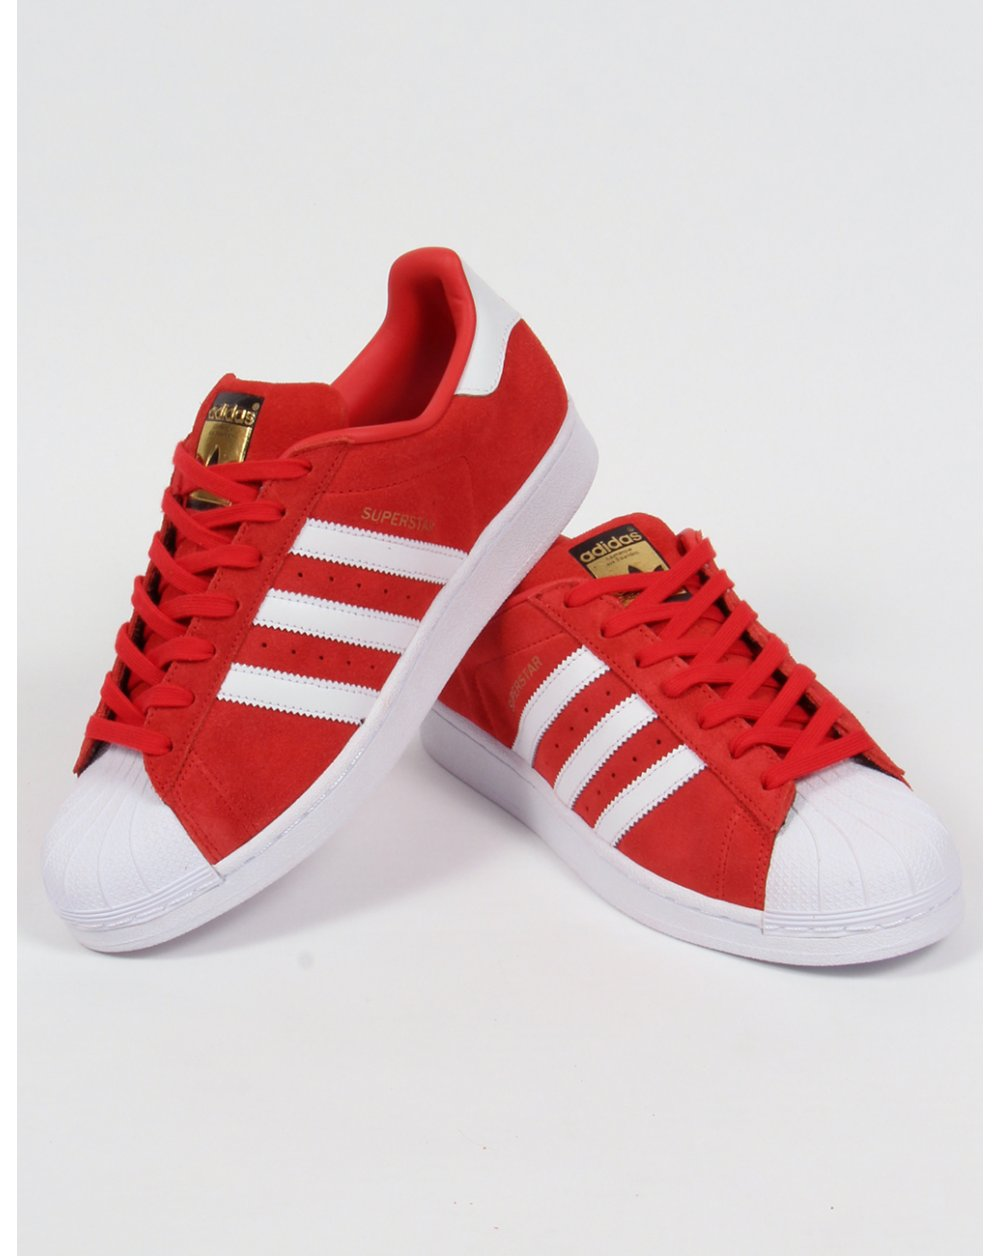 21f0bfb4336c adidas superstar original red adult adidas superstar adidas superstar metal toe  high top